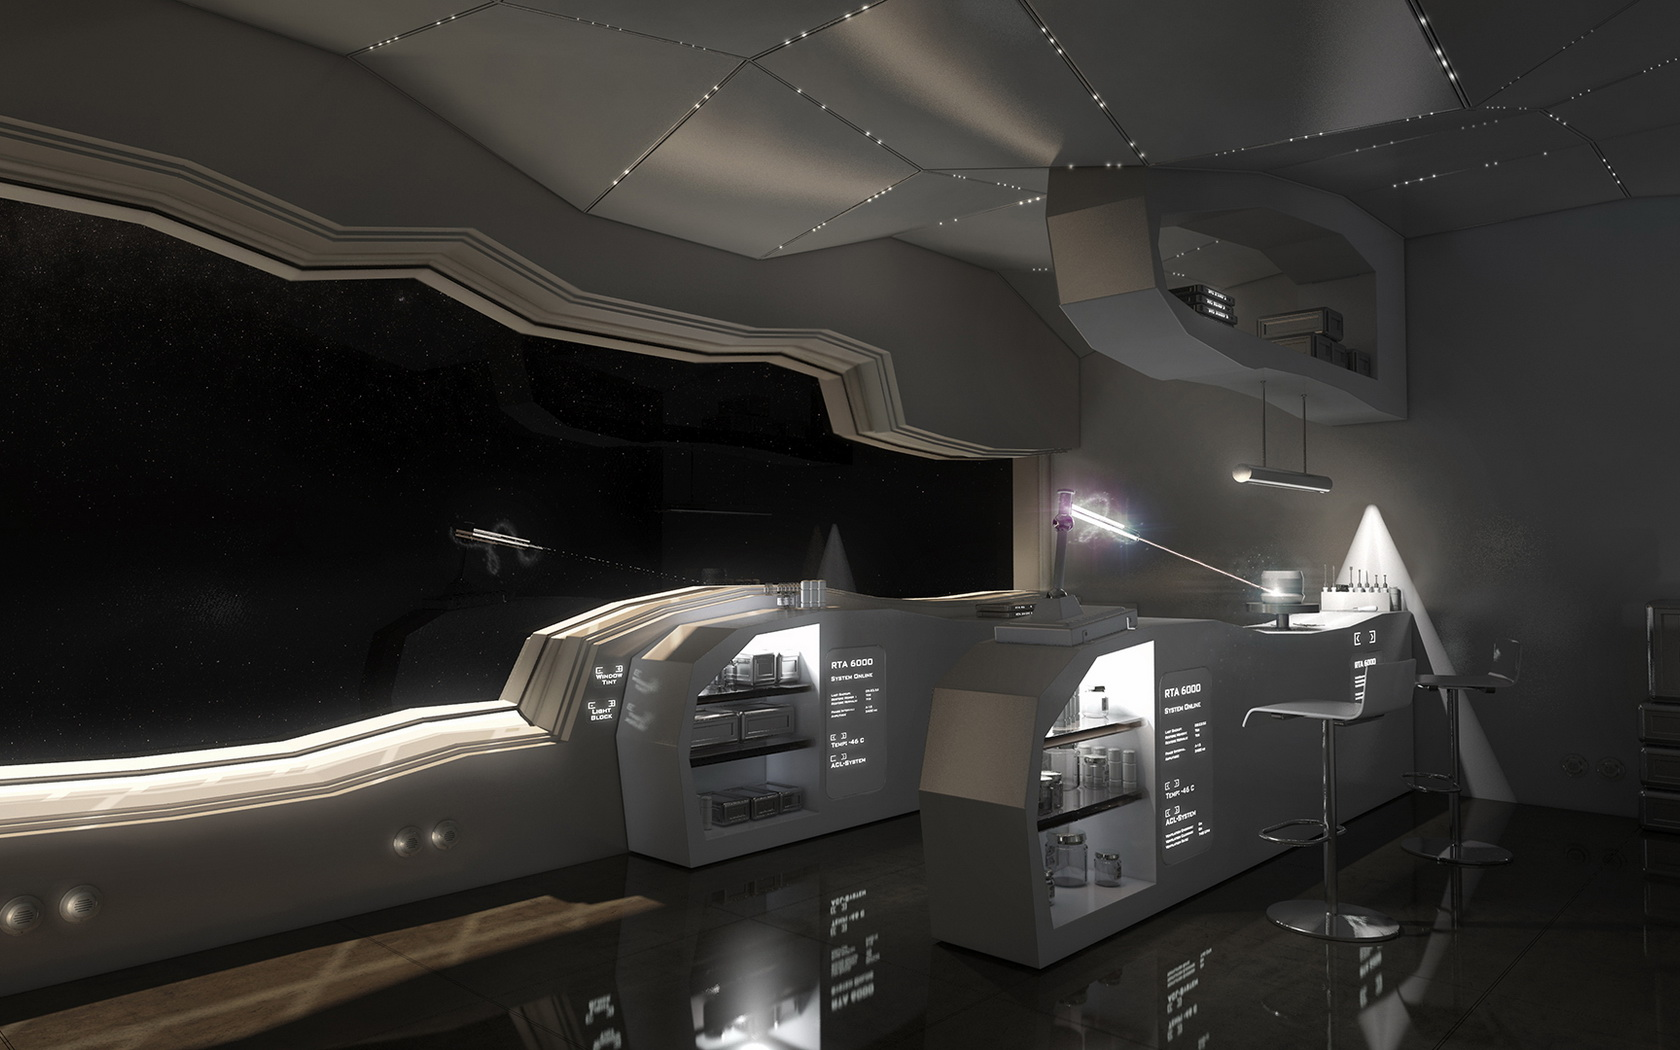 Space Ship Interior (page 2) - Pics about space